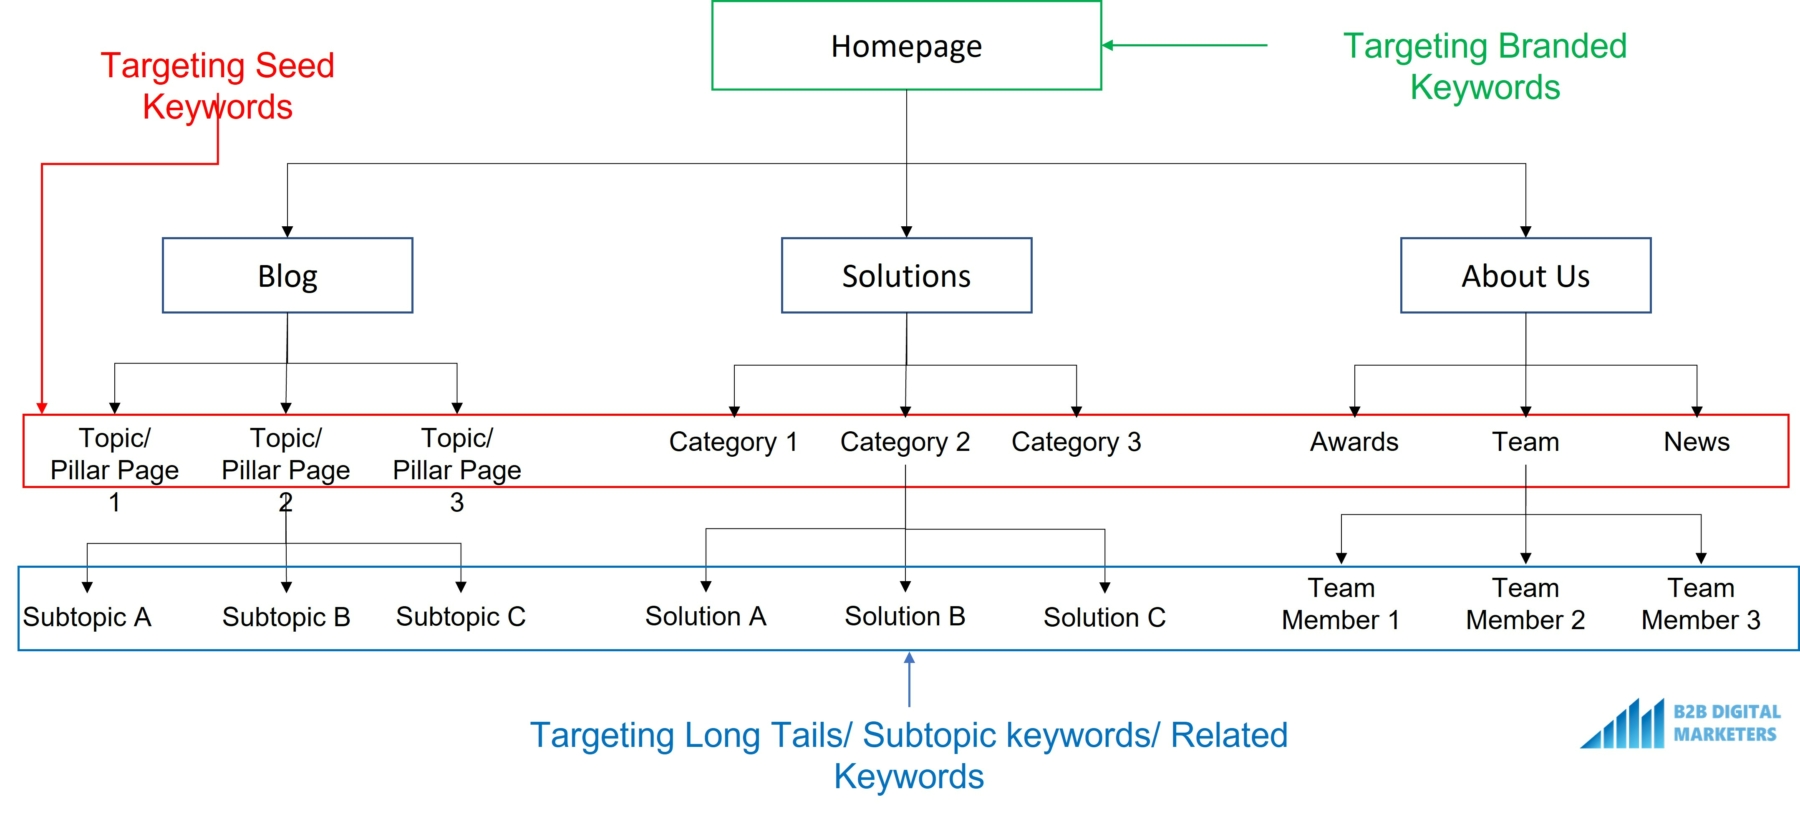 example of seed keywords, related keywords and long tail keywords and branded keywords within website architecture